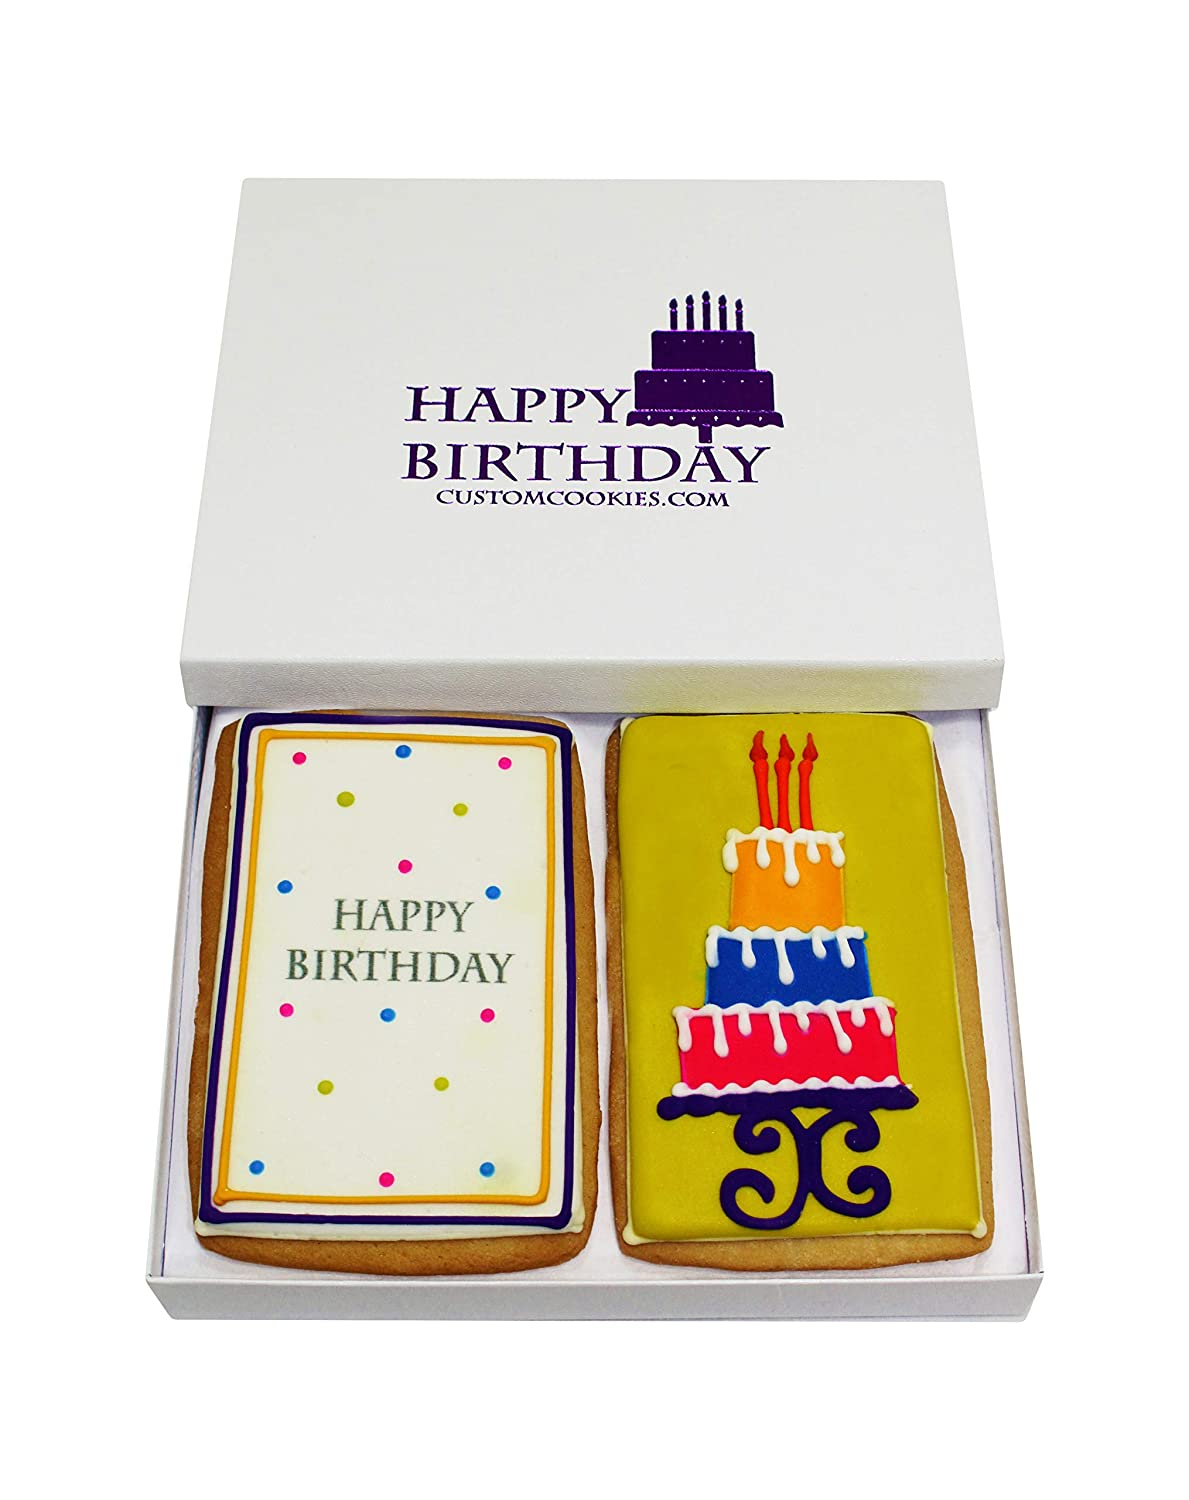 Gourmet Happy Birthday Cookie Gift Basket | 2 Large 2.5 x 4.5 in Vanilla Sugar Cookies Hand-Decorated Snack Variety Pack | Kosher B-Day Bakery Care Package For Women, Men Boys & Girls | Prime Delivery